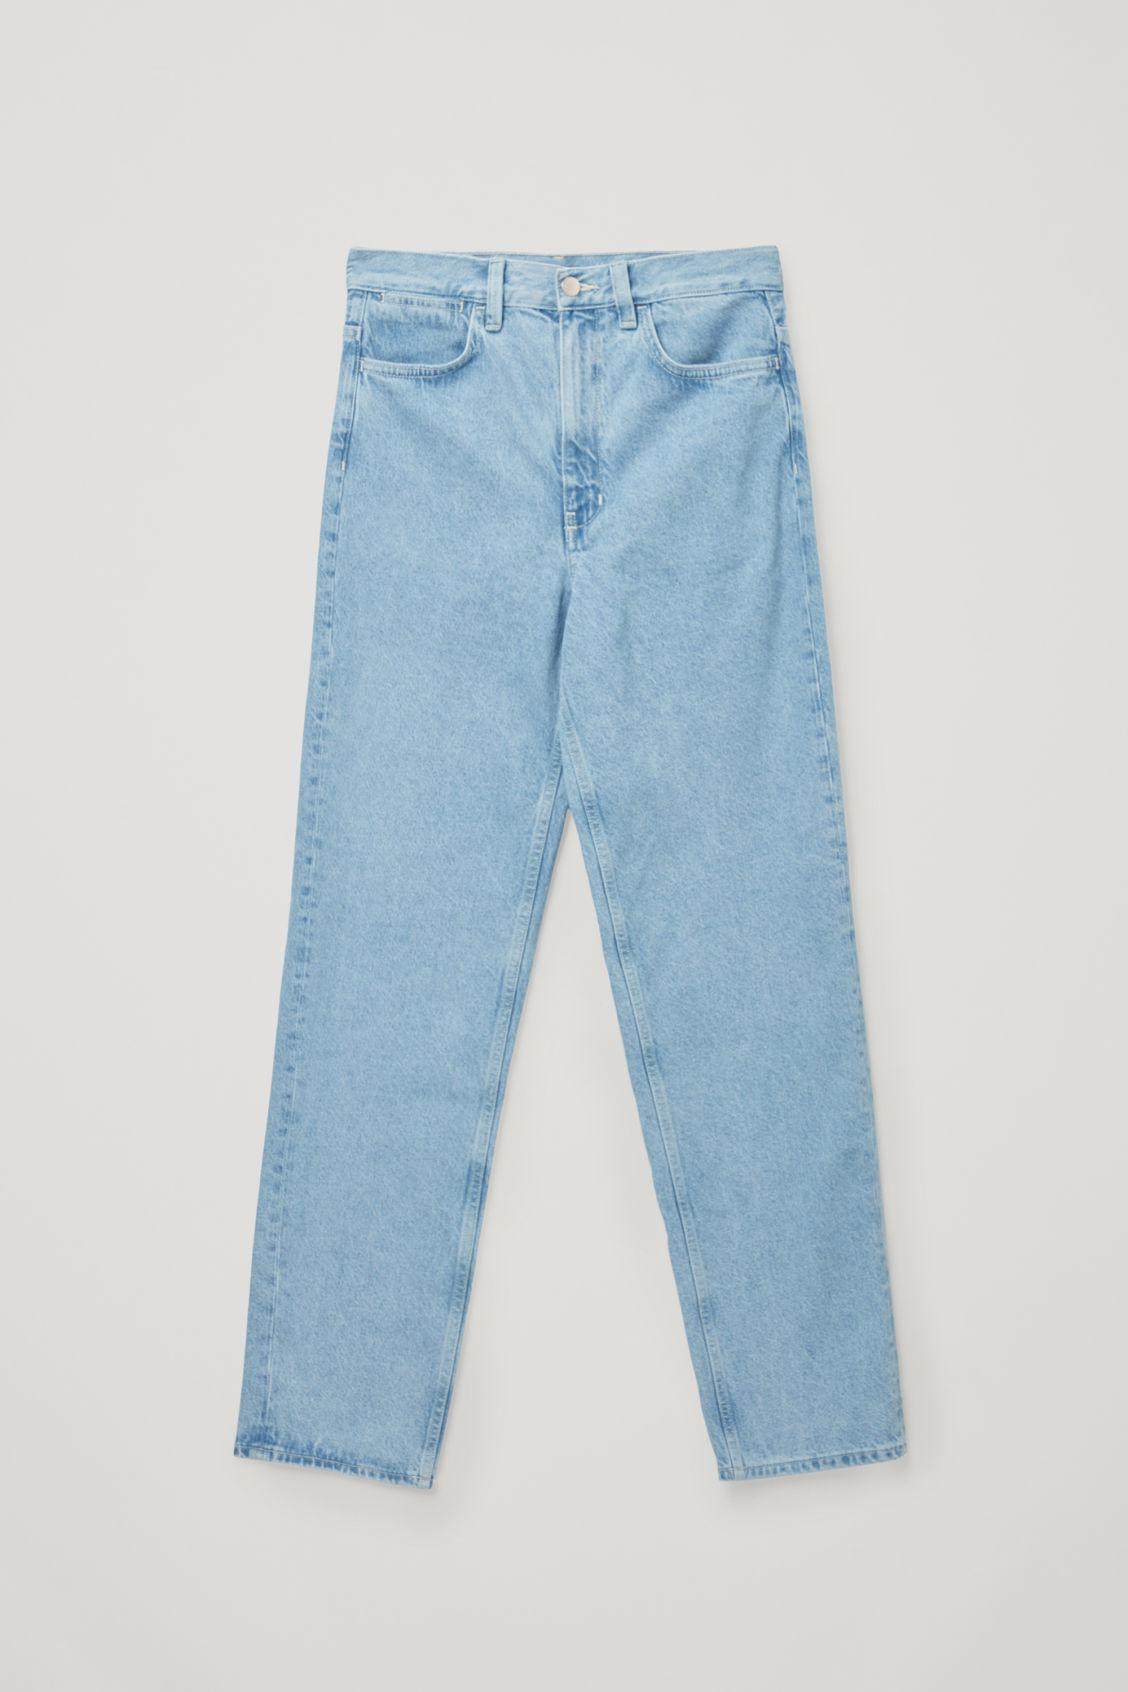 STRAIGHT MID-RISE JEANS 7